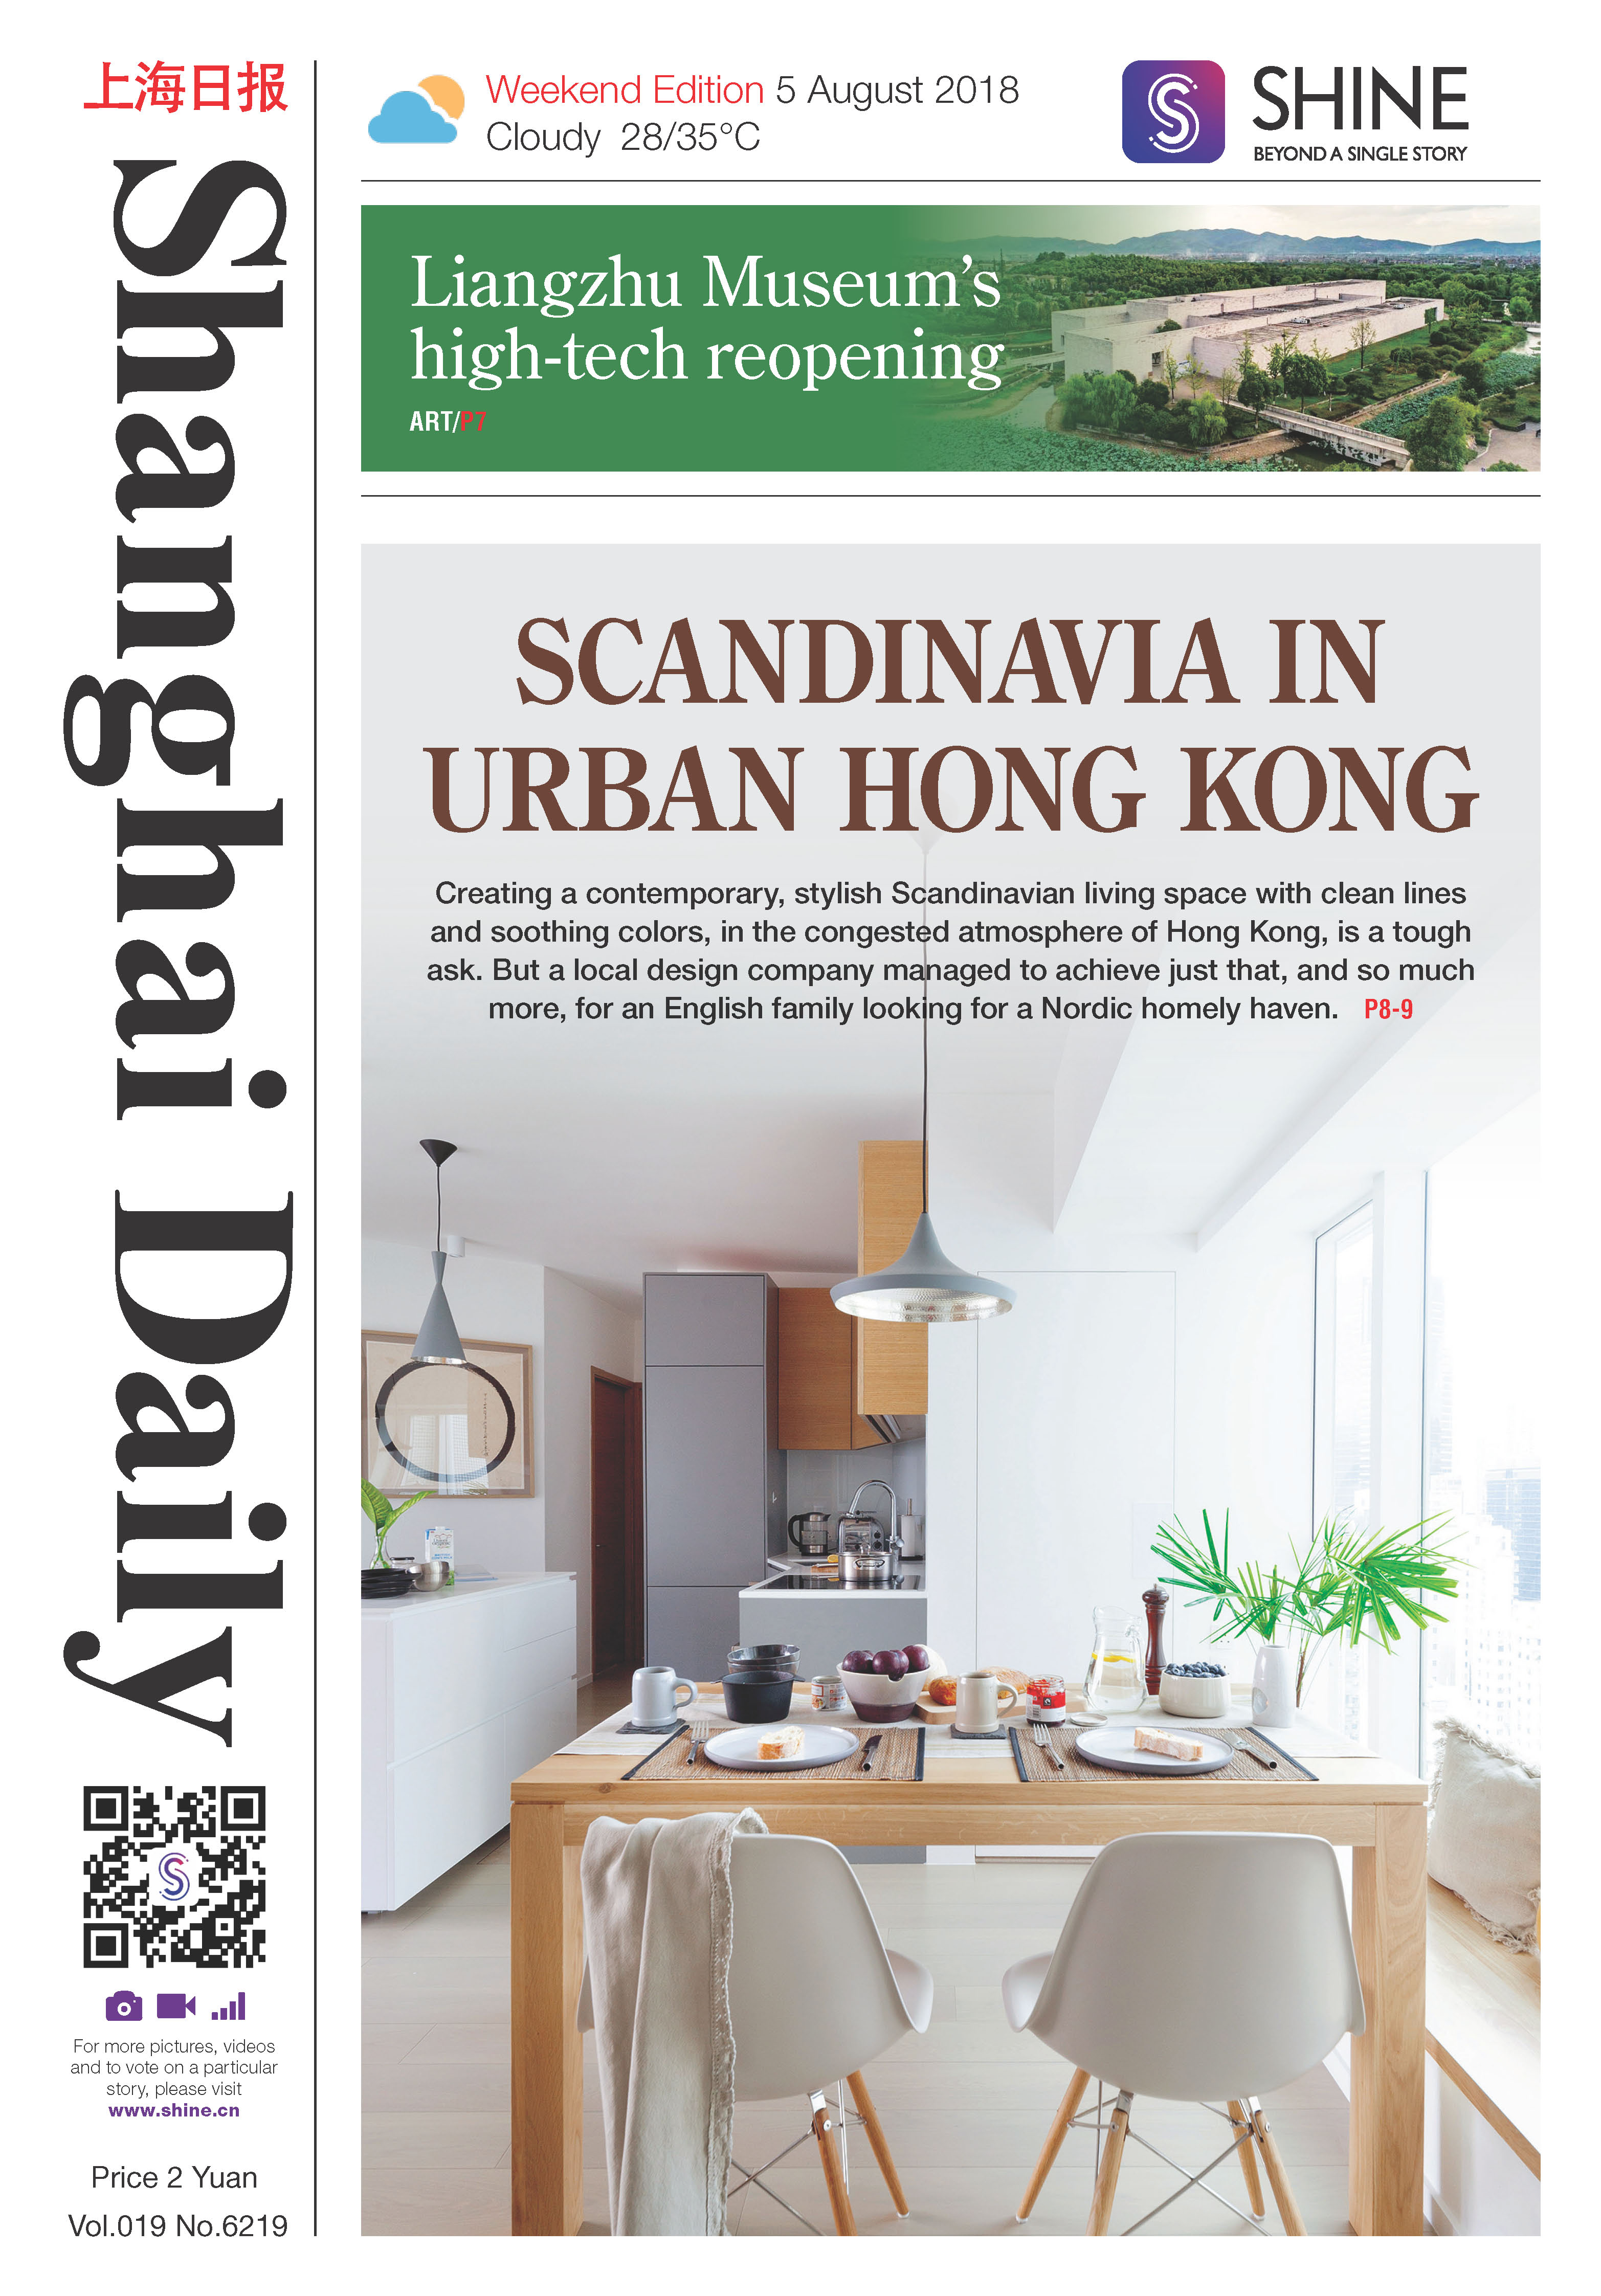 Nordic Homely Haven | Shanghai Daily | Aug 2018